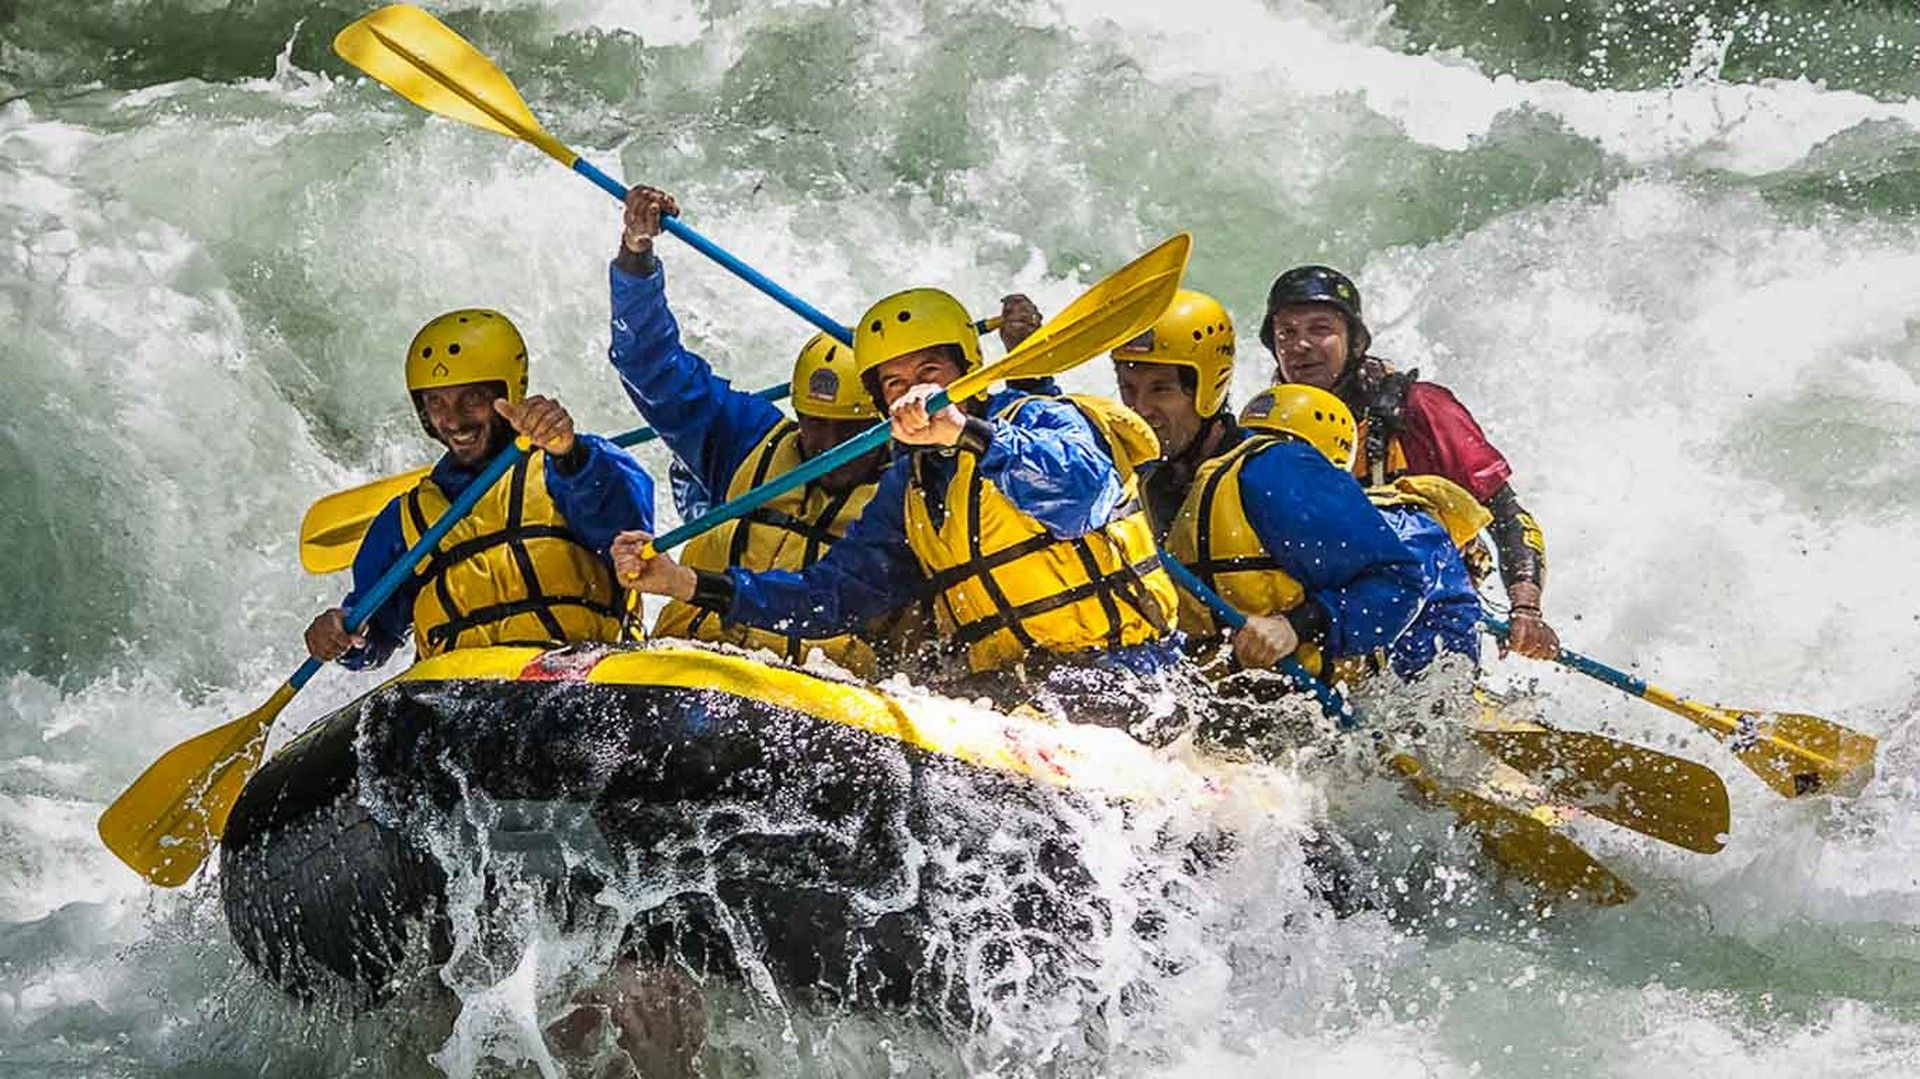 Image result for rafting wallpaper